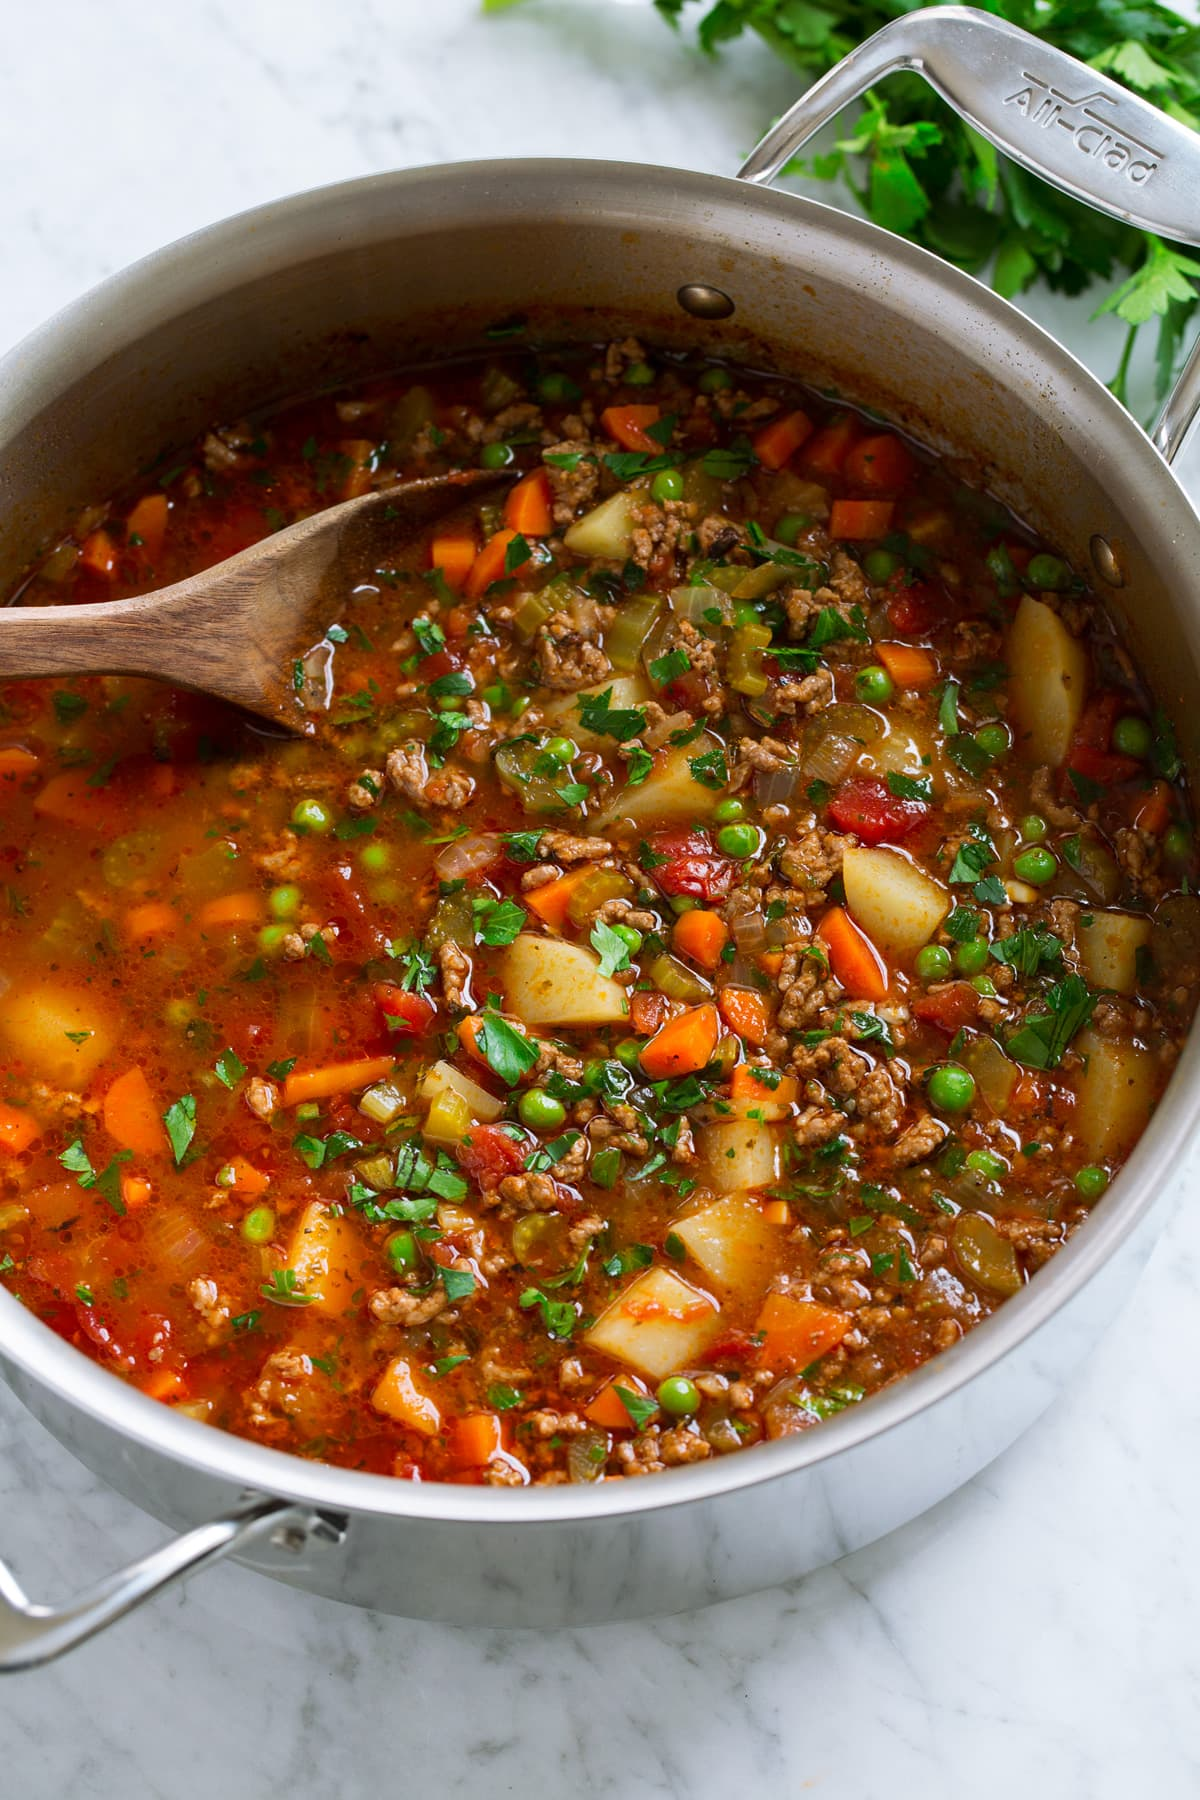 Stainless steel pot full of ground beef hamburger soup with potatoes, carrots, peas, celery, tomatoes, herbs and broth.